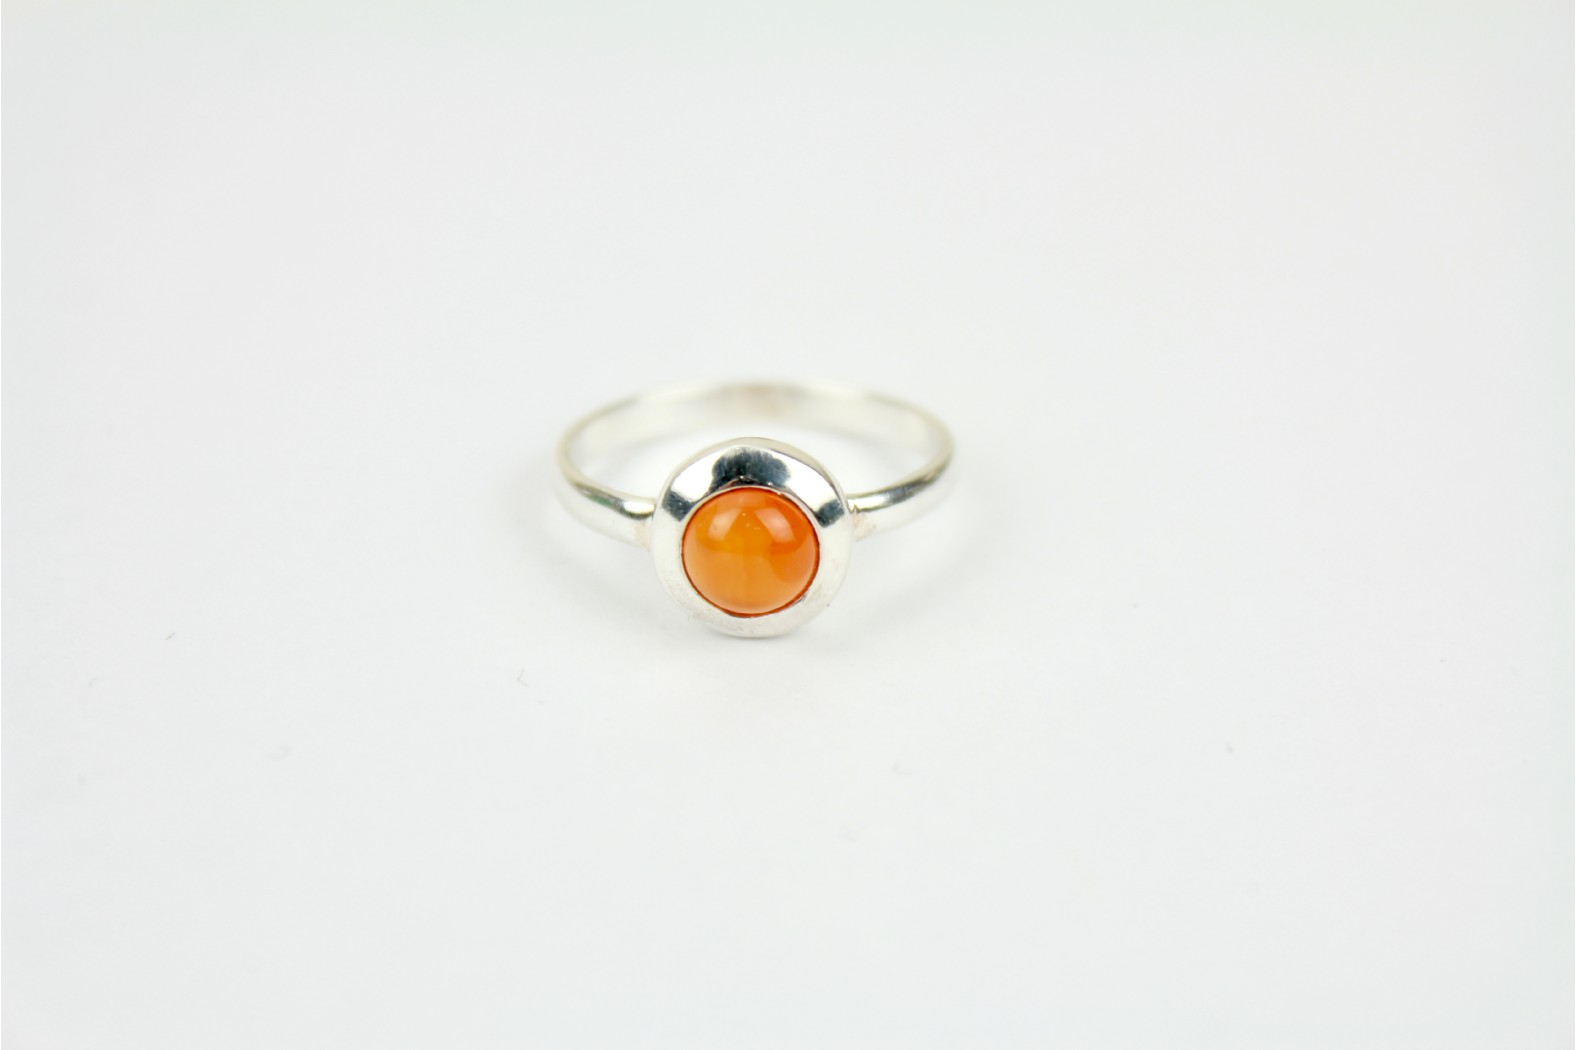 Contemporary circular Amber colour mounted in silver size 7 or N